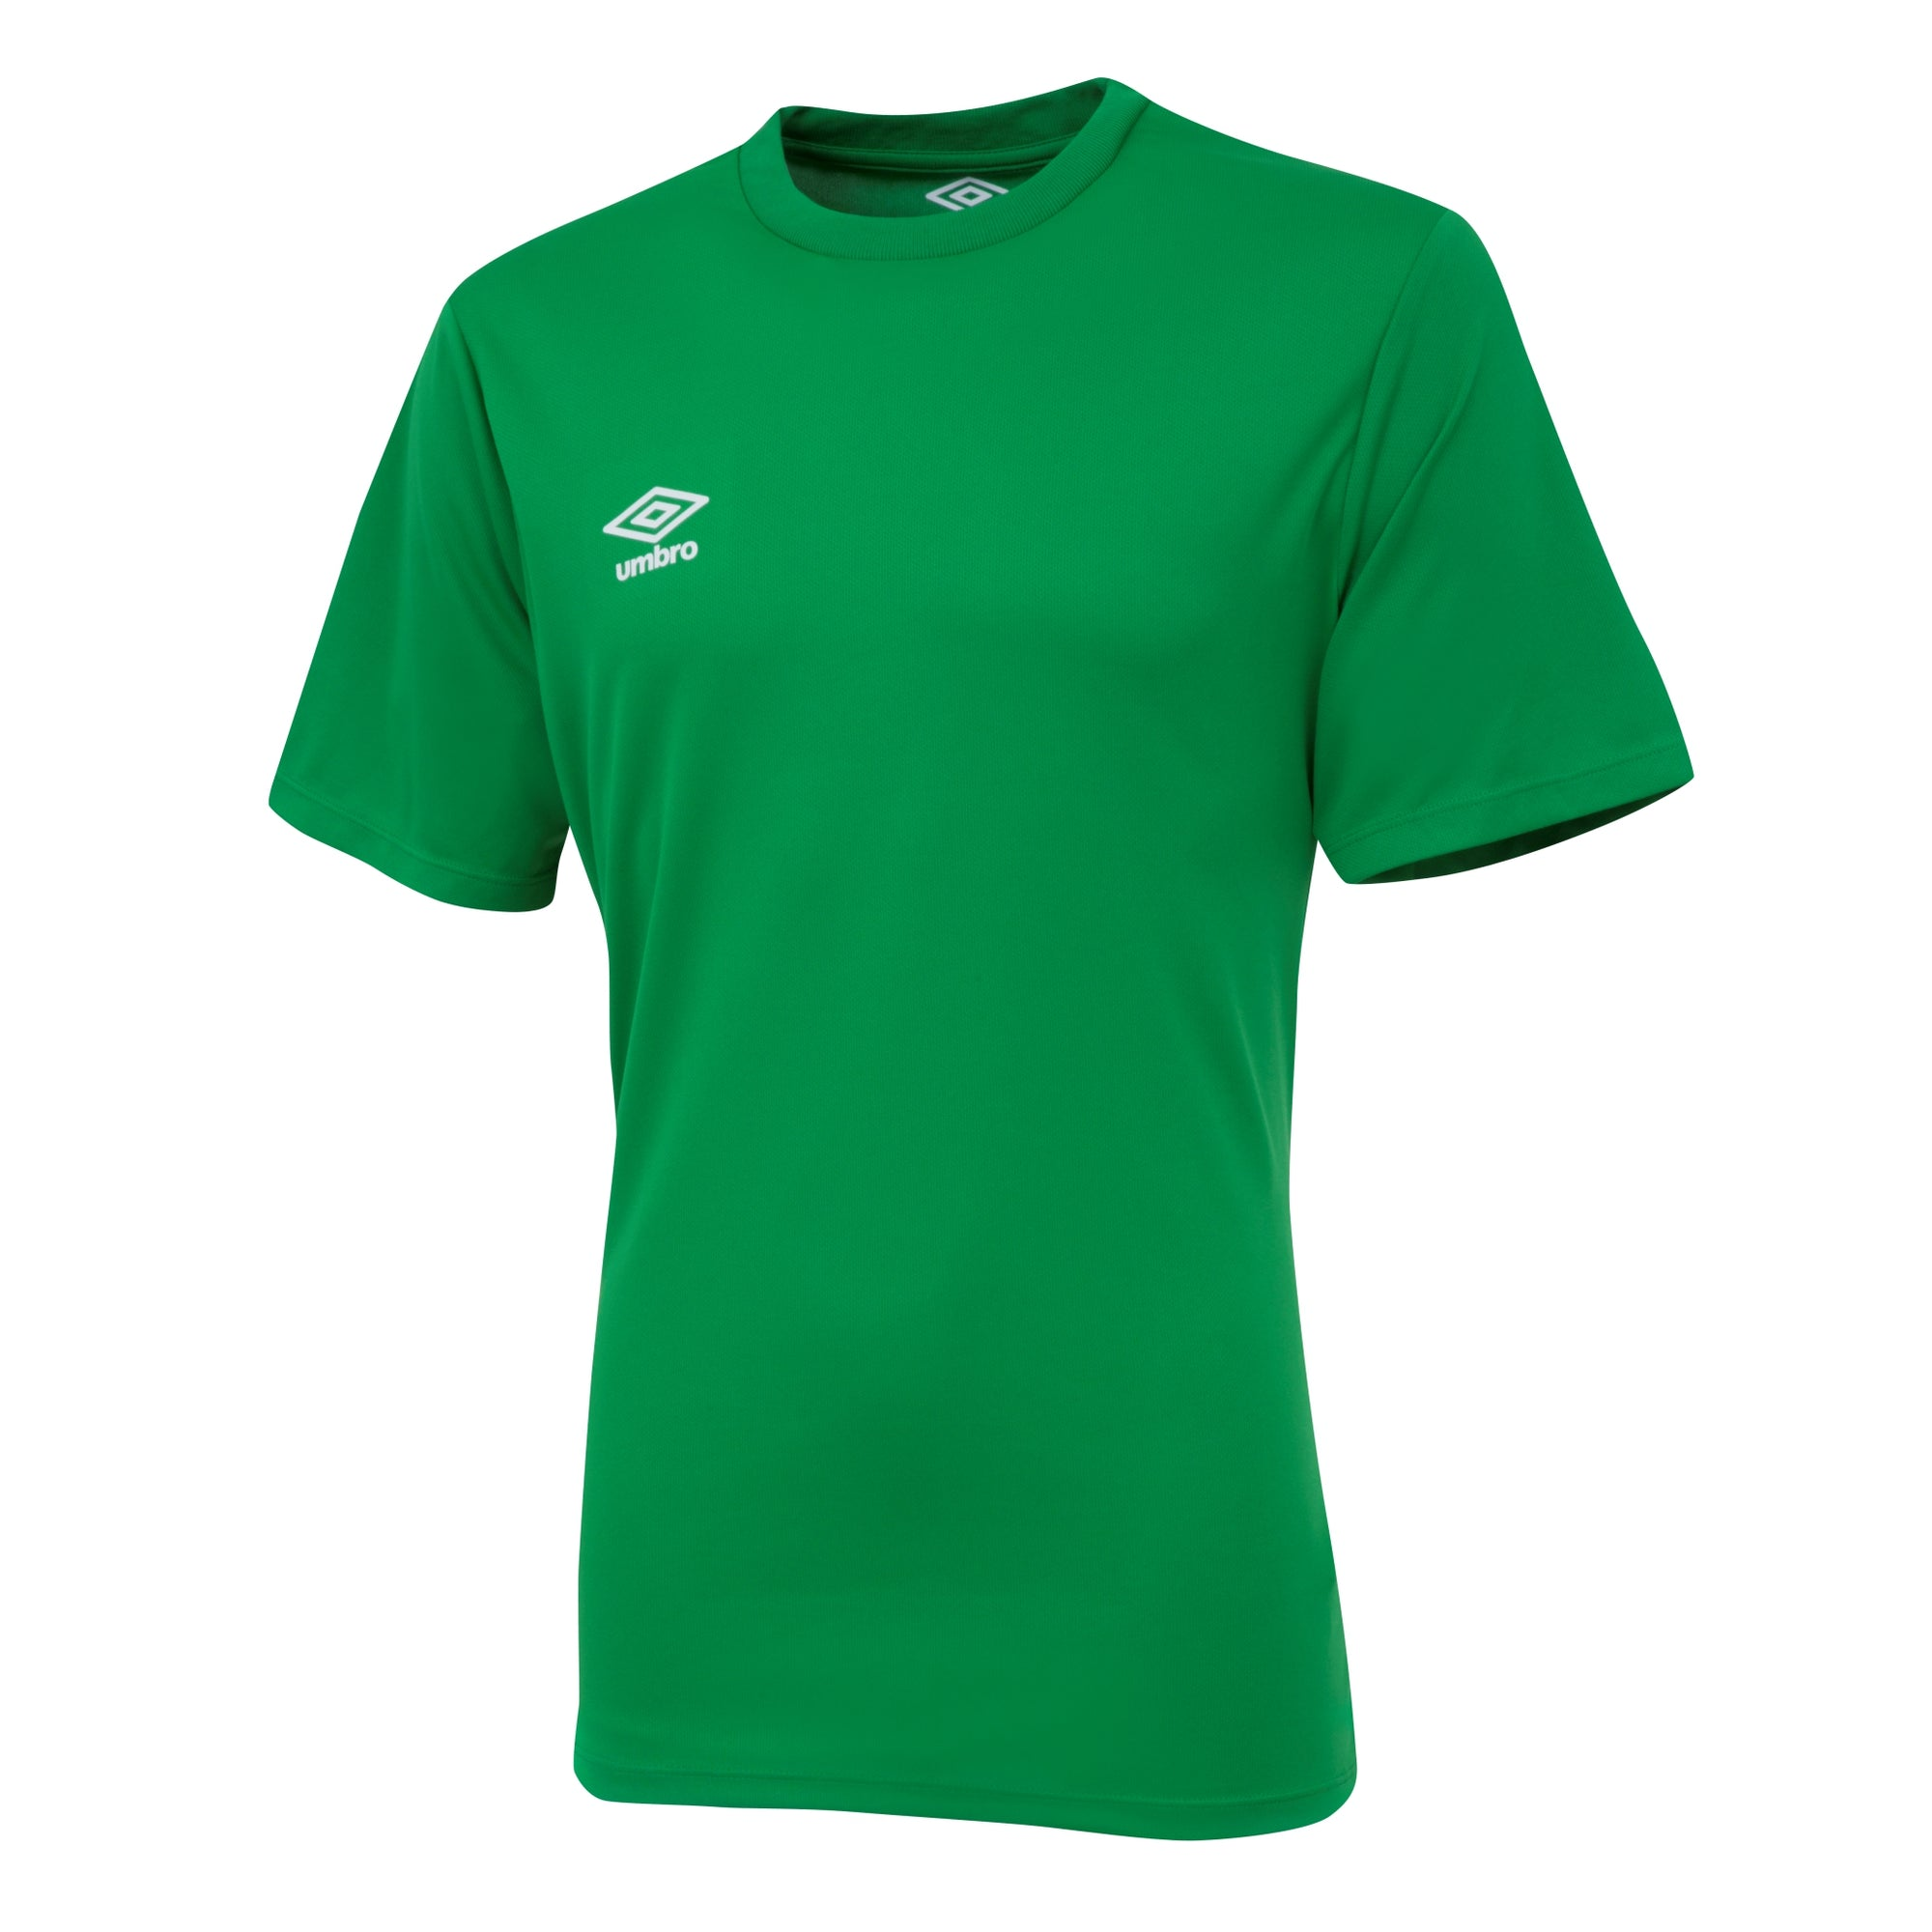 Umbro short sleeve club jersey in emerald with white printed Umbro logo